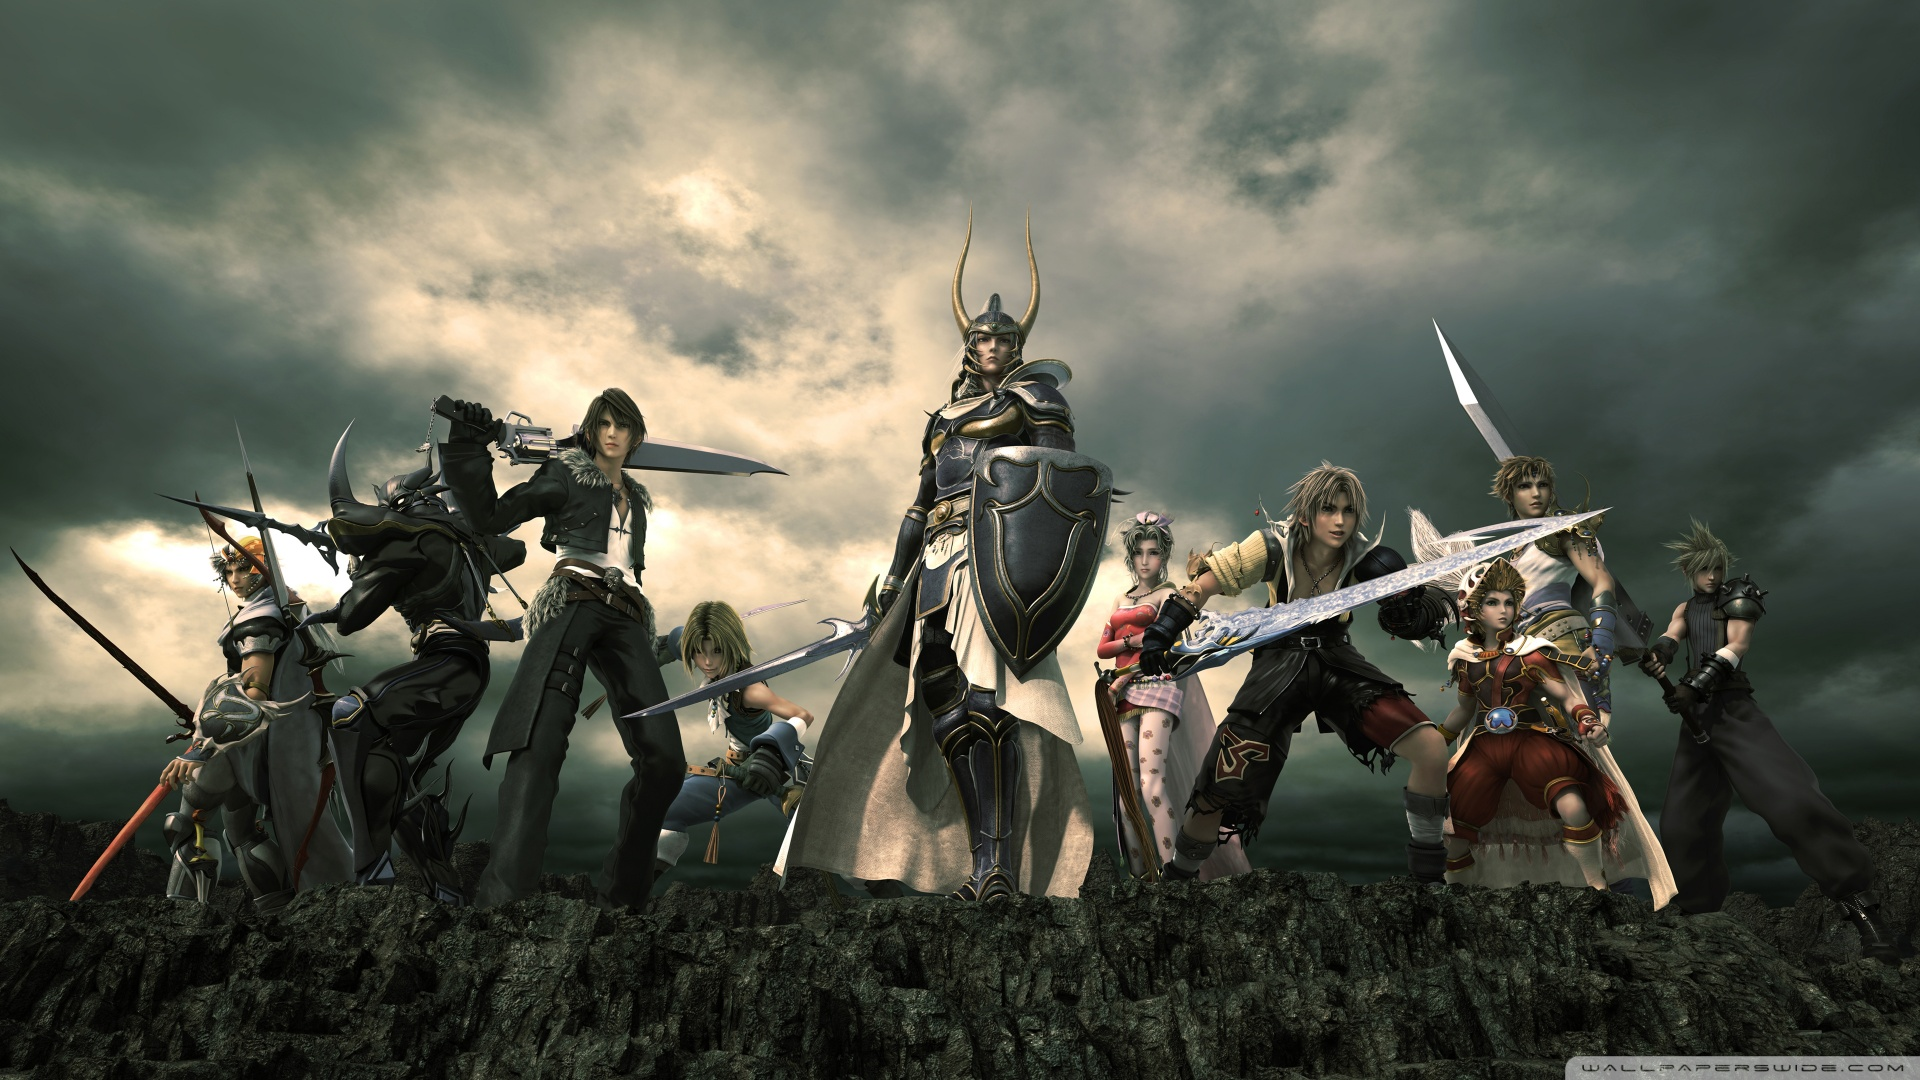 dissidia_final_fantasy-wallpaper-1920x1080